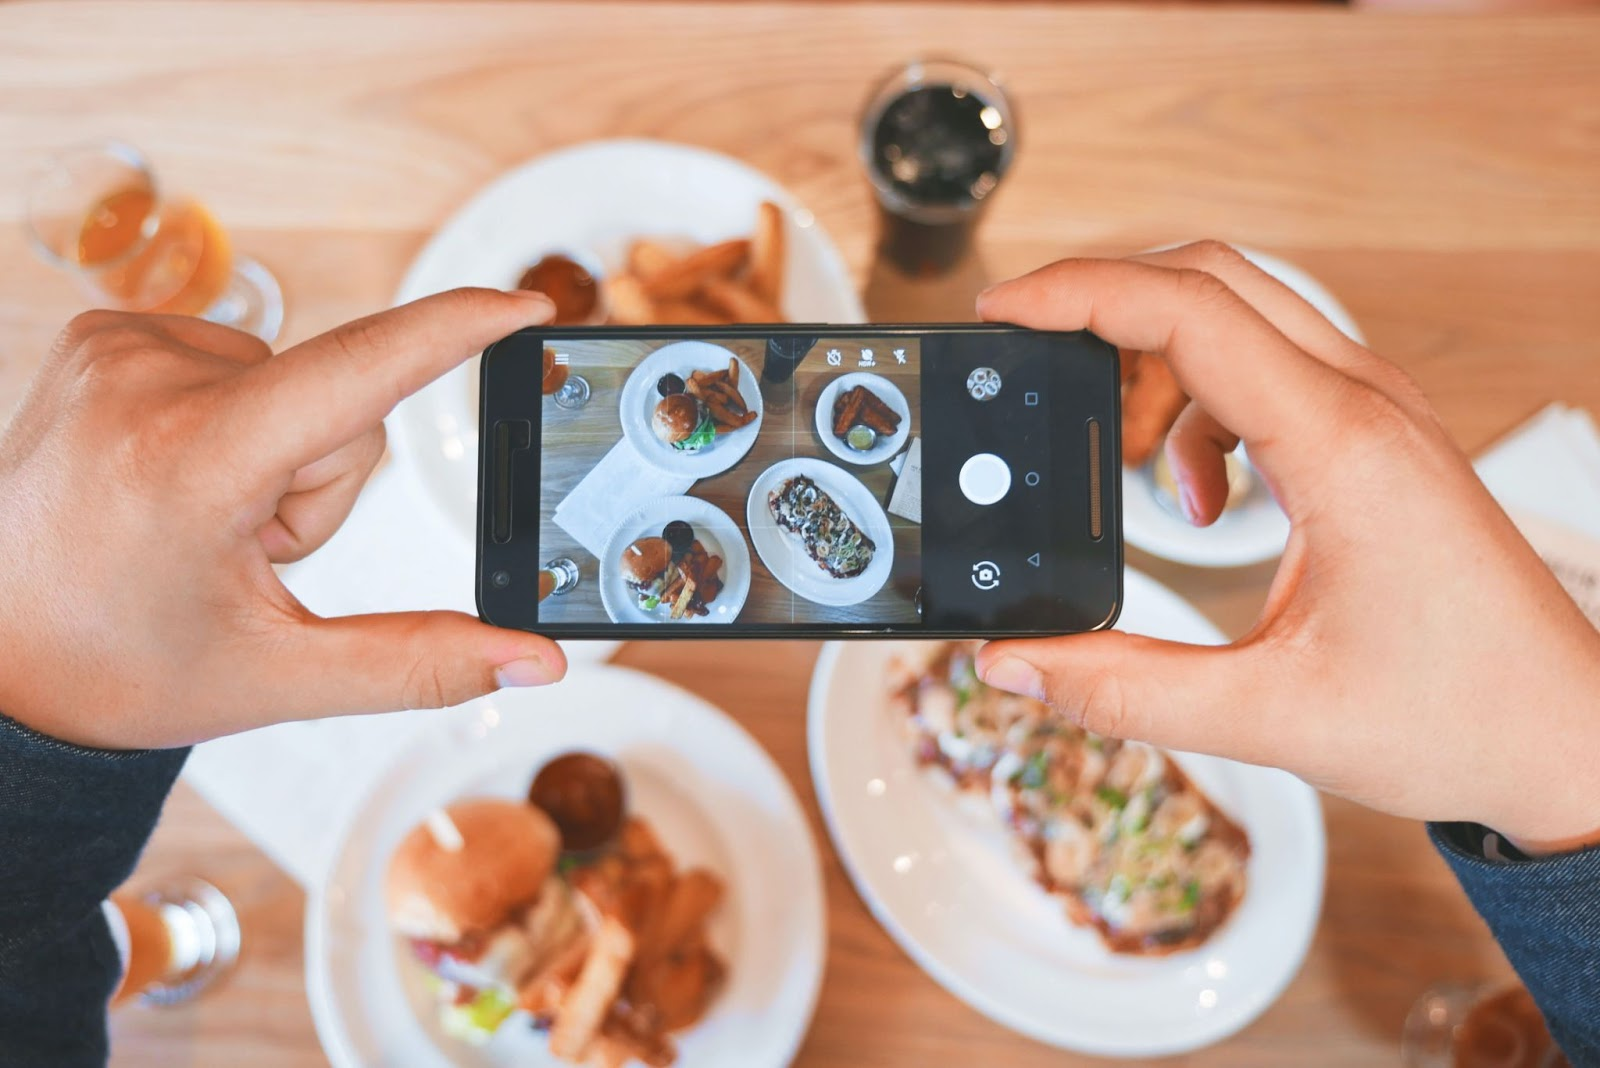 Instagram stories help in interactive and engaging with fitness brands